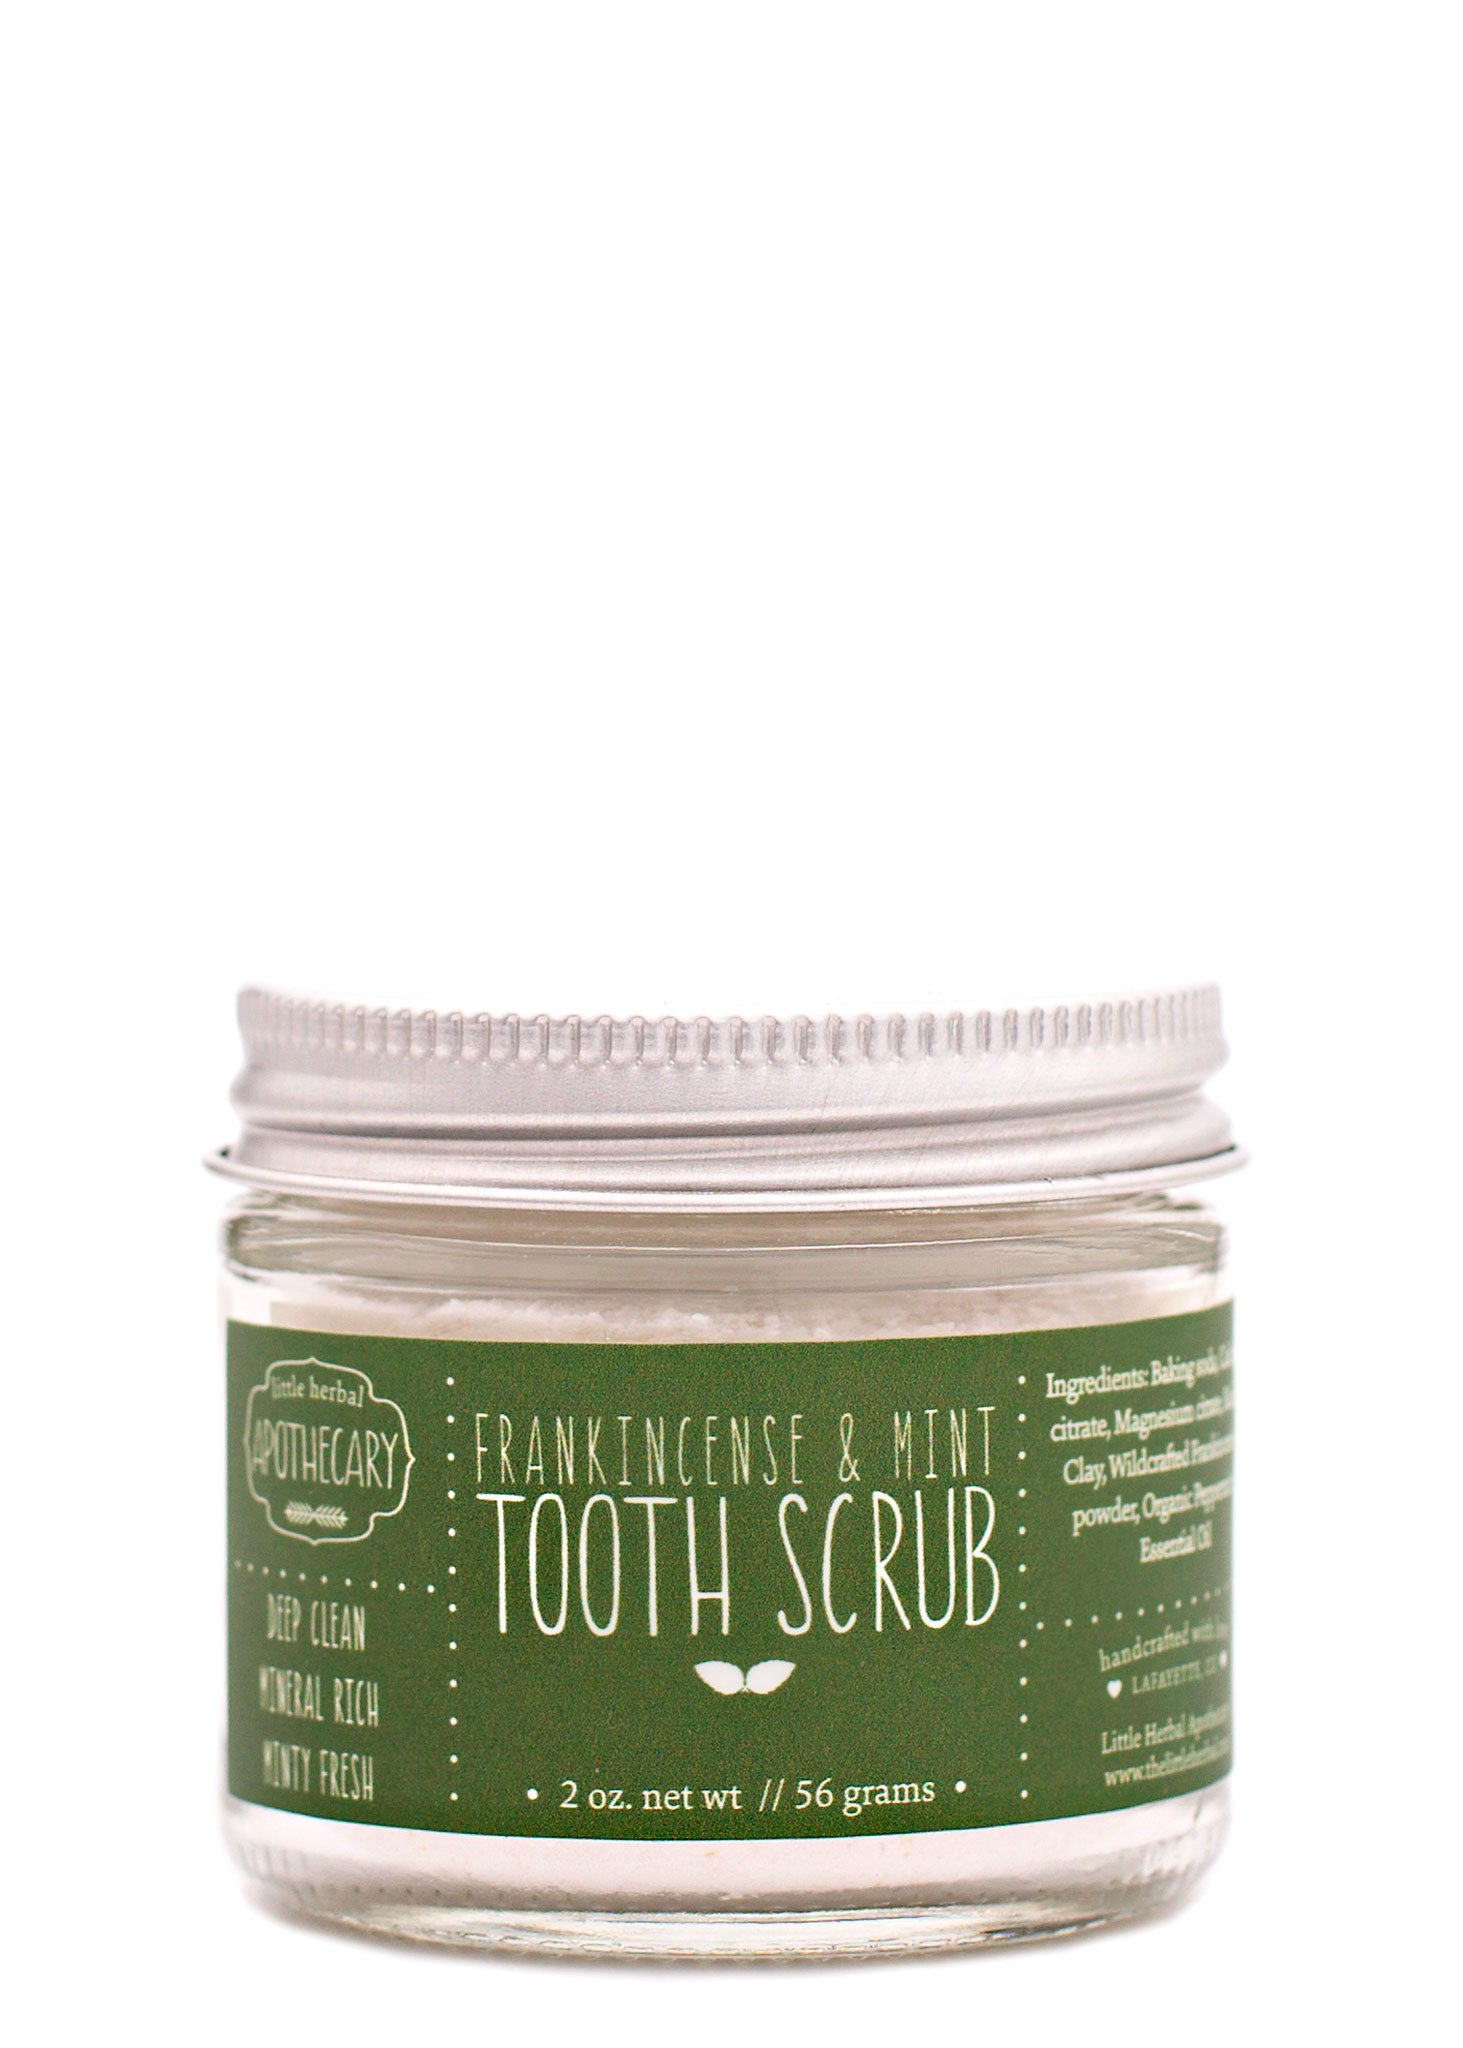 Frankincense & Mint Tooth Scrub